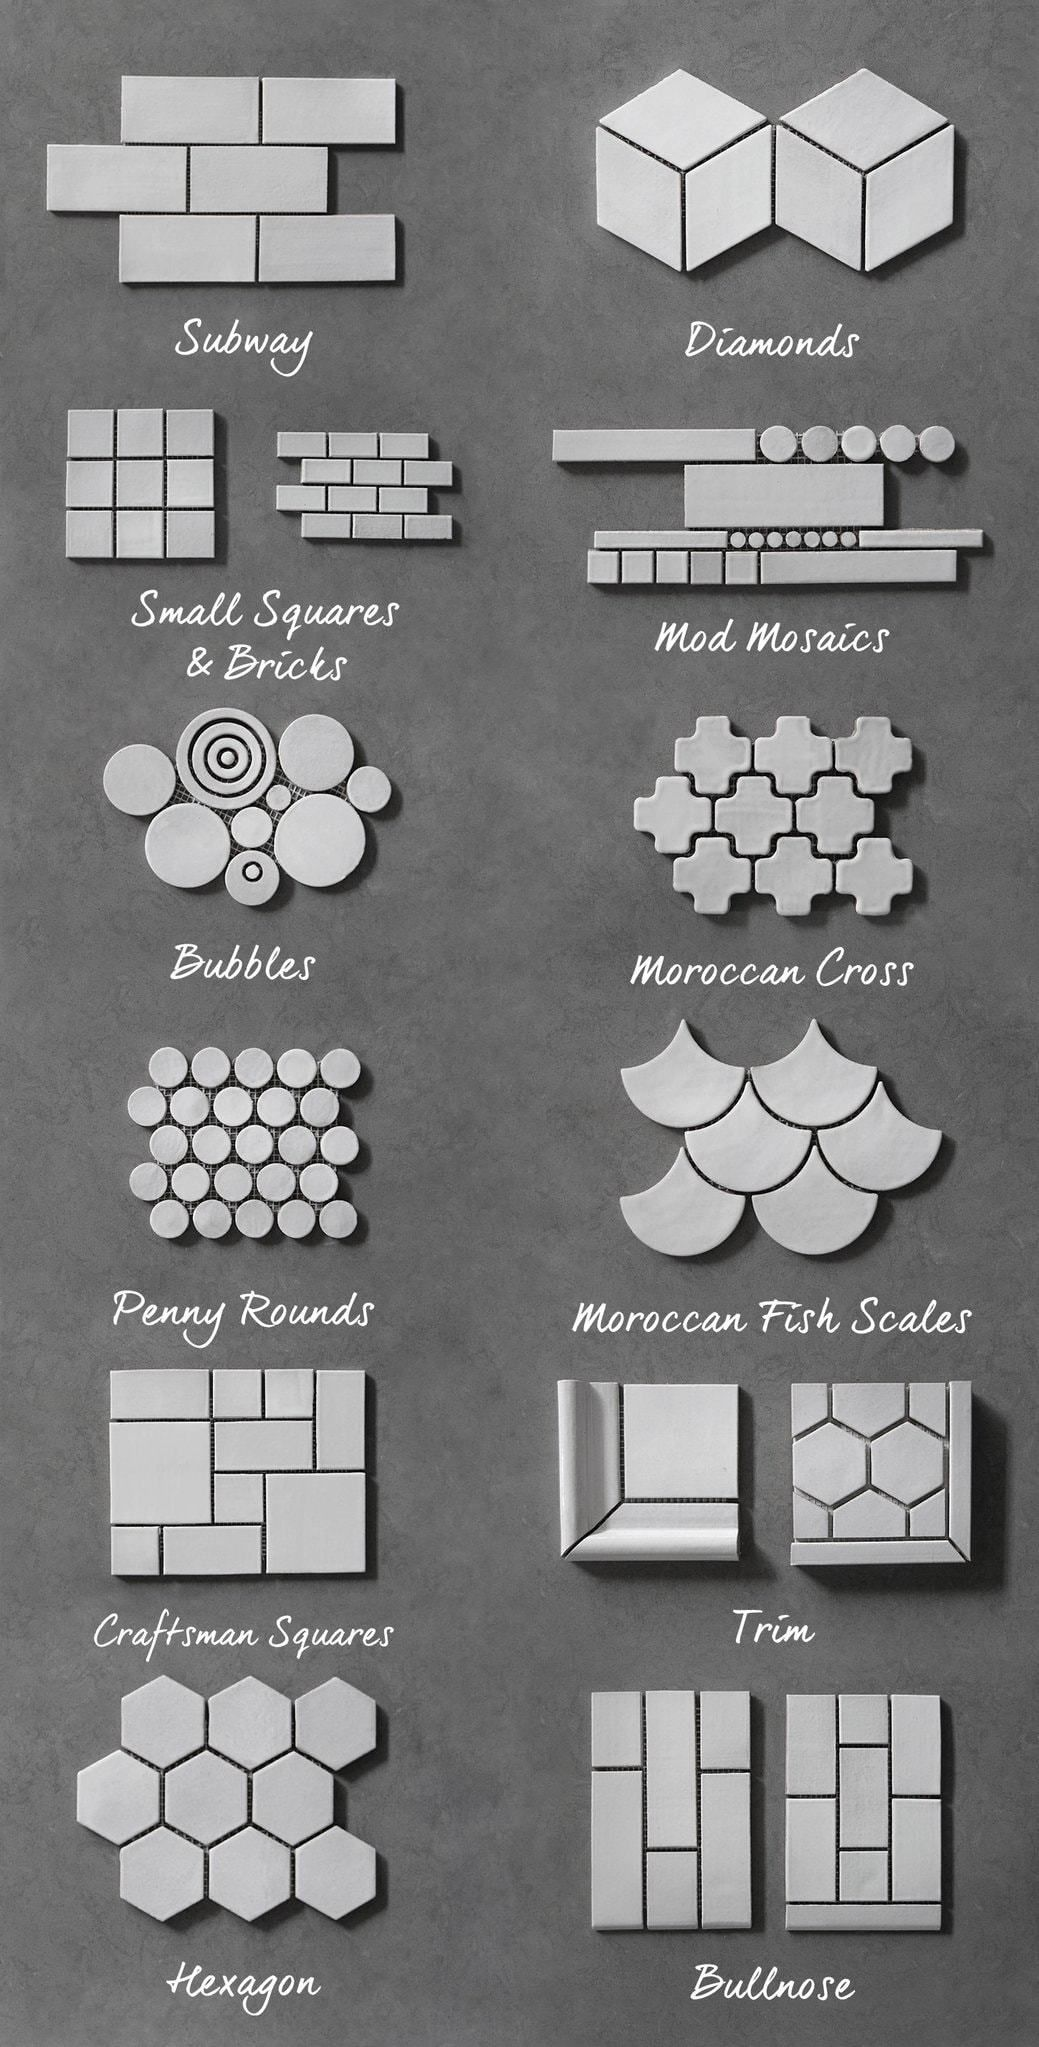 Tile Guide – Our Shapes & Sizes